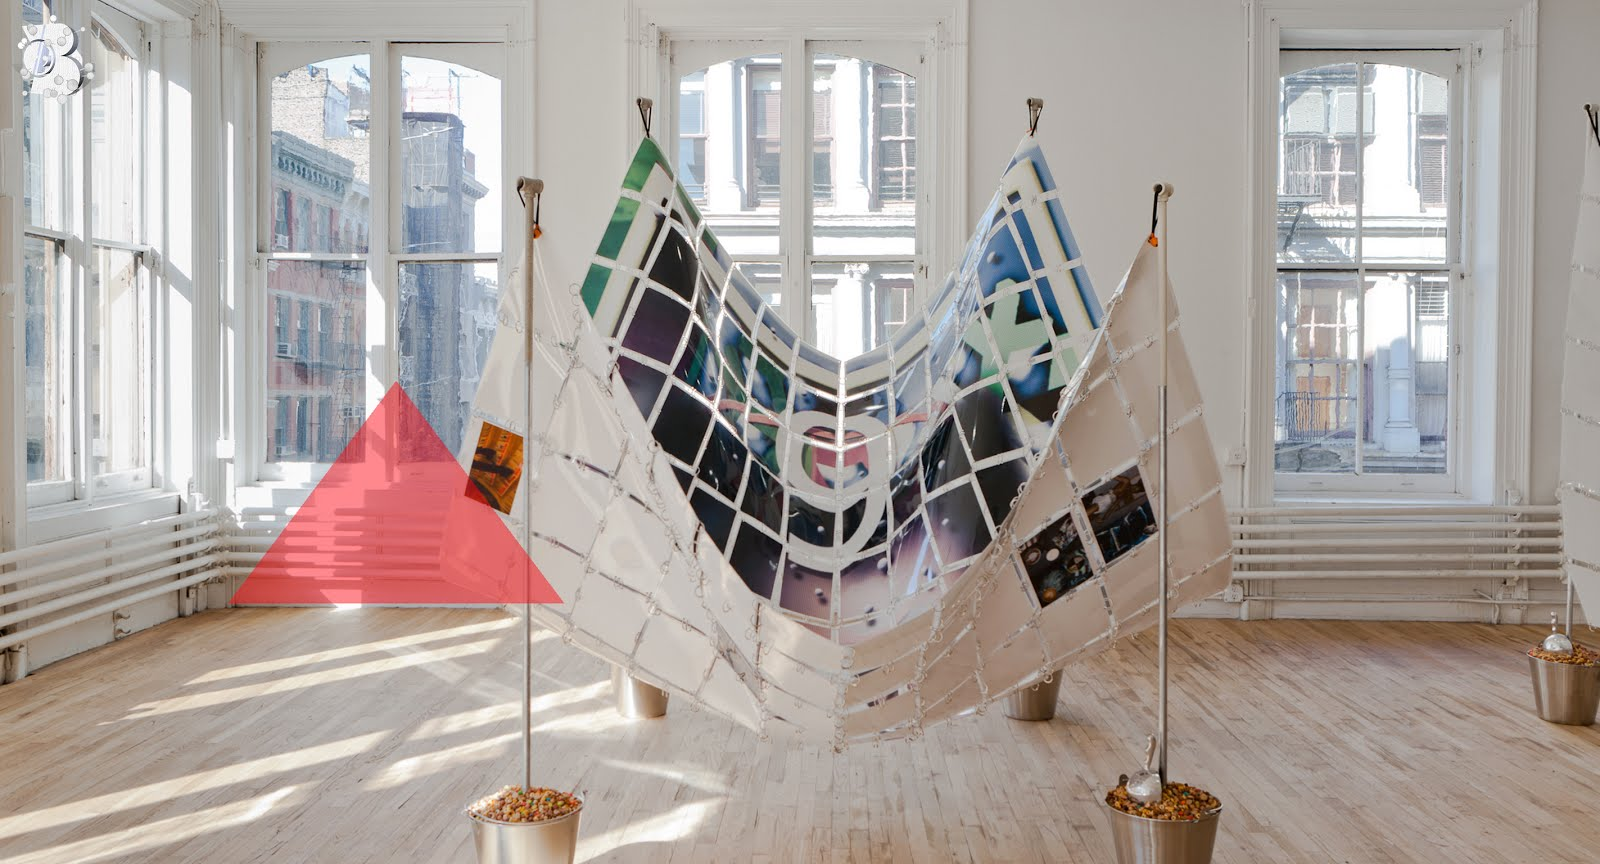 Crib (9 Months) installation view at DUOX4Larkin Artists Space, 2012